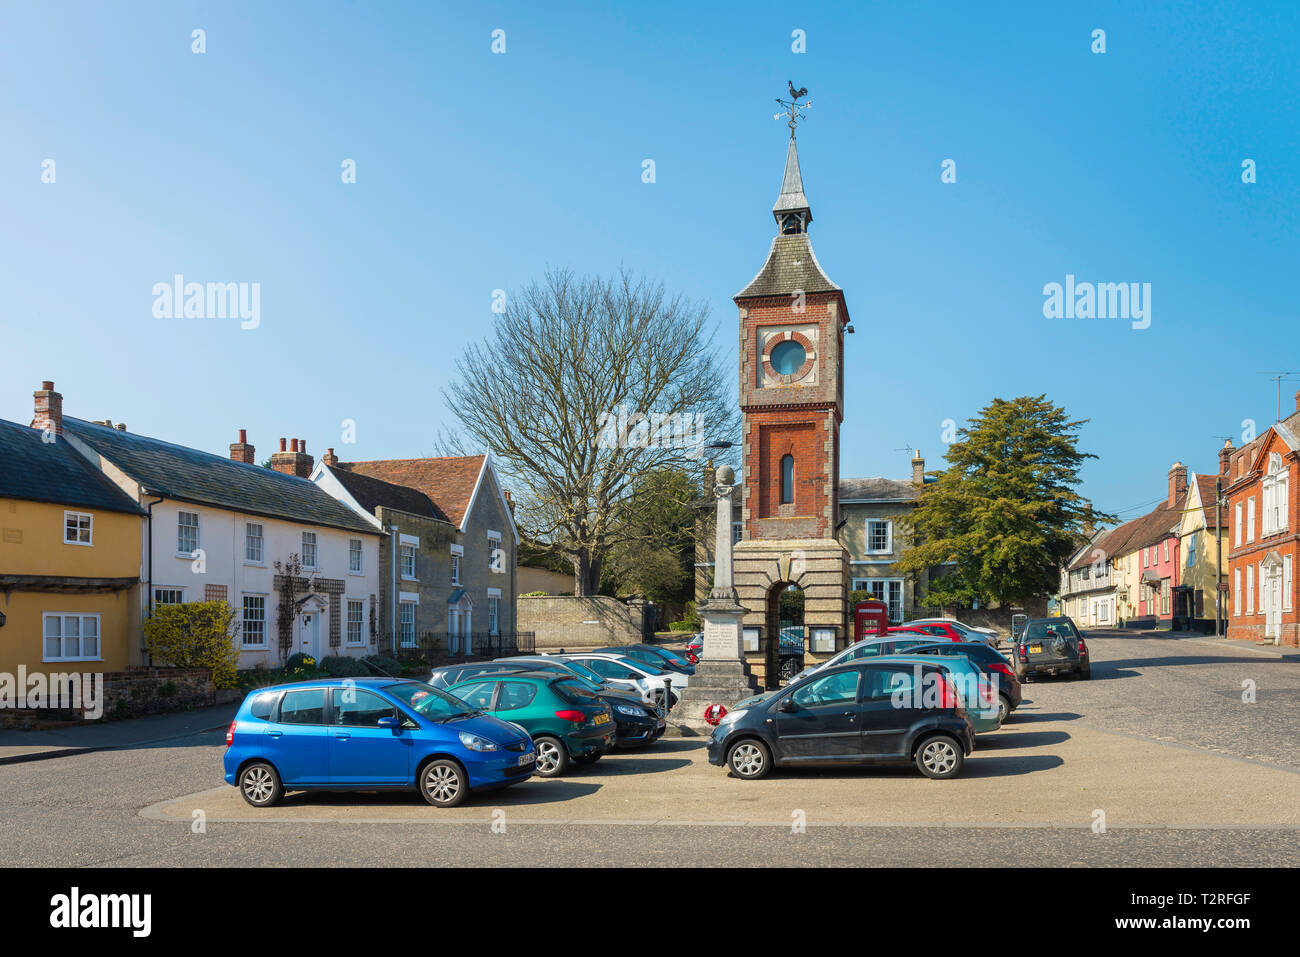 Bildeston Suffolk UK, view of Market Place in the centre of the village of Bildeston, Babergh district, Suffolk, England, UK - Stock Image